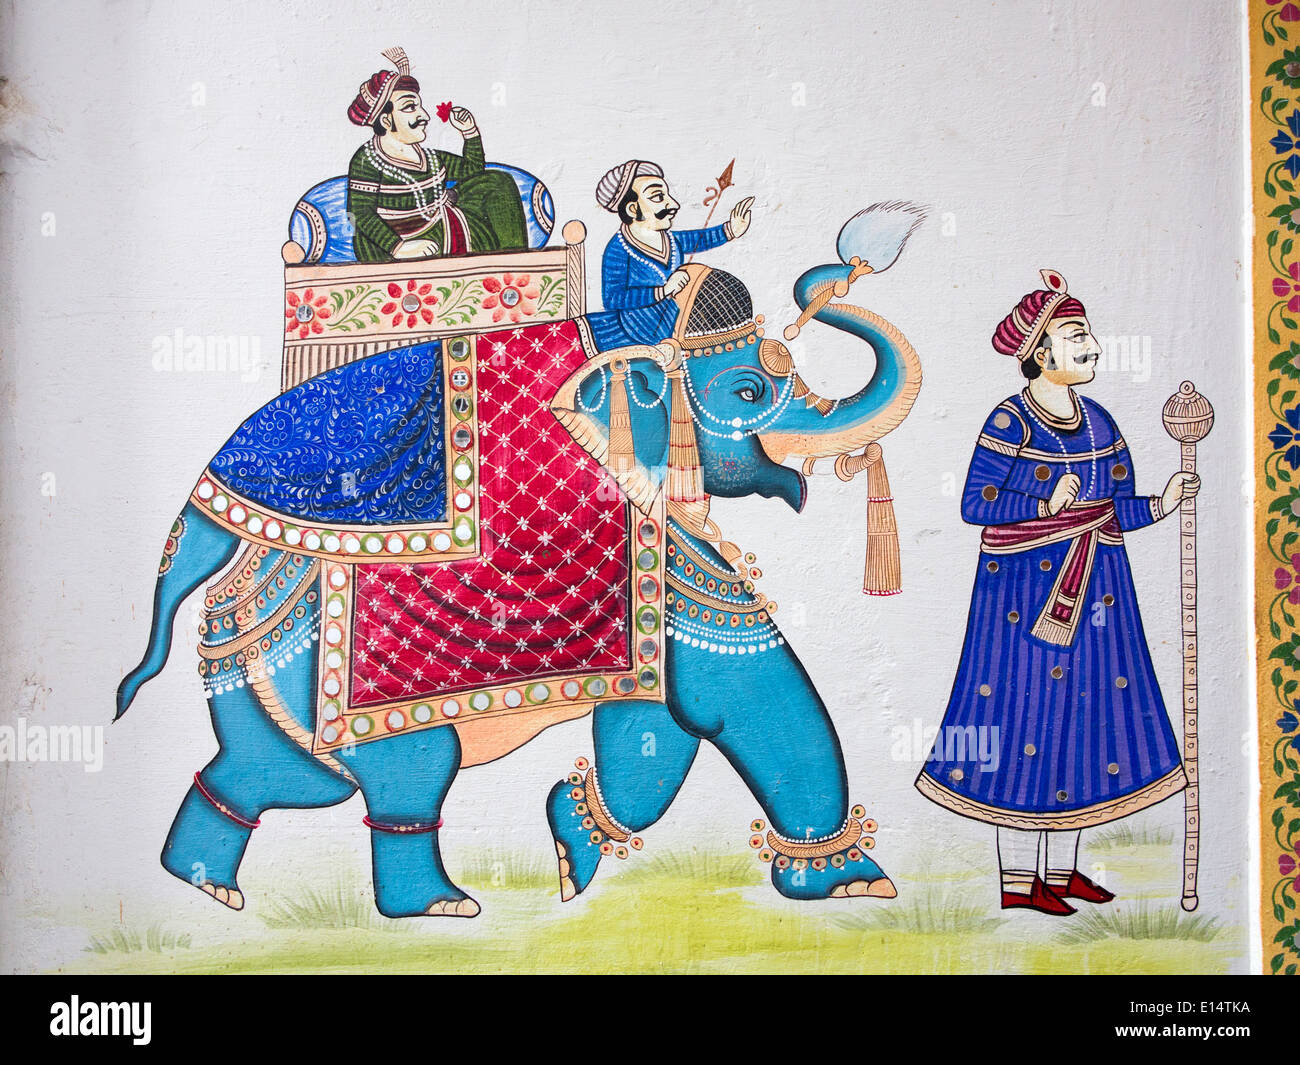 art traditions of eastern rajasthan a Home about rajasthan arts & culture  held in october in jodhpur, this annual two-day event attempts to showcase the art and culture of the jodhpur region.